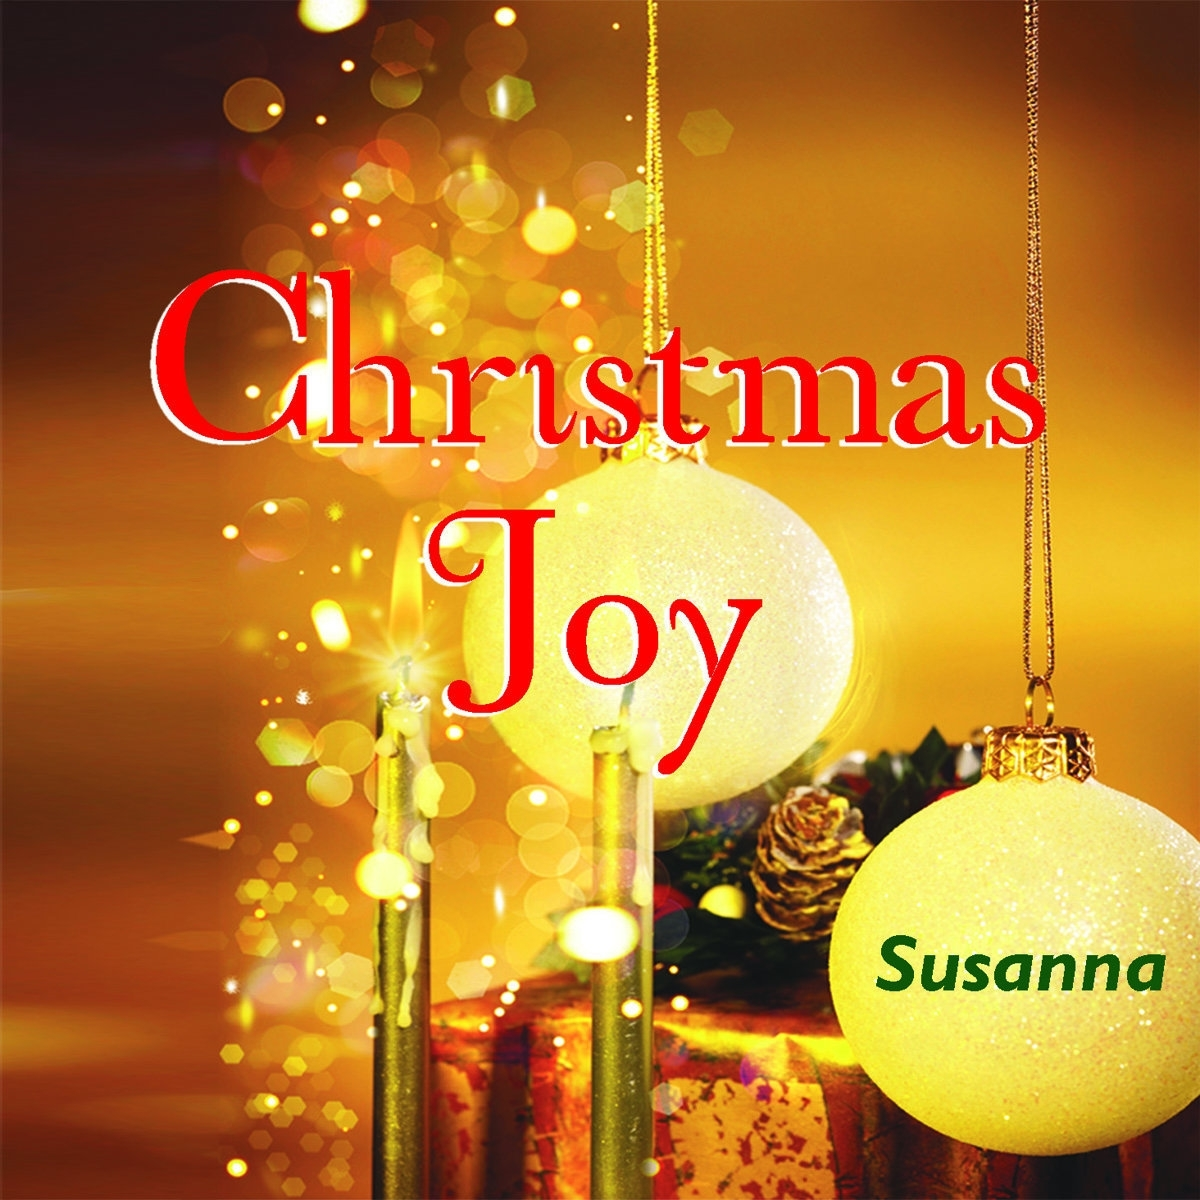 Christmas joy by susanna   hbcd17